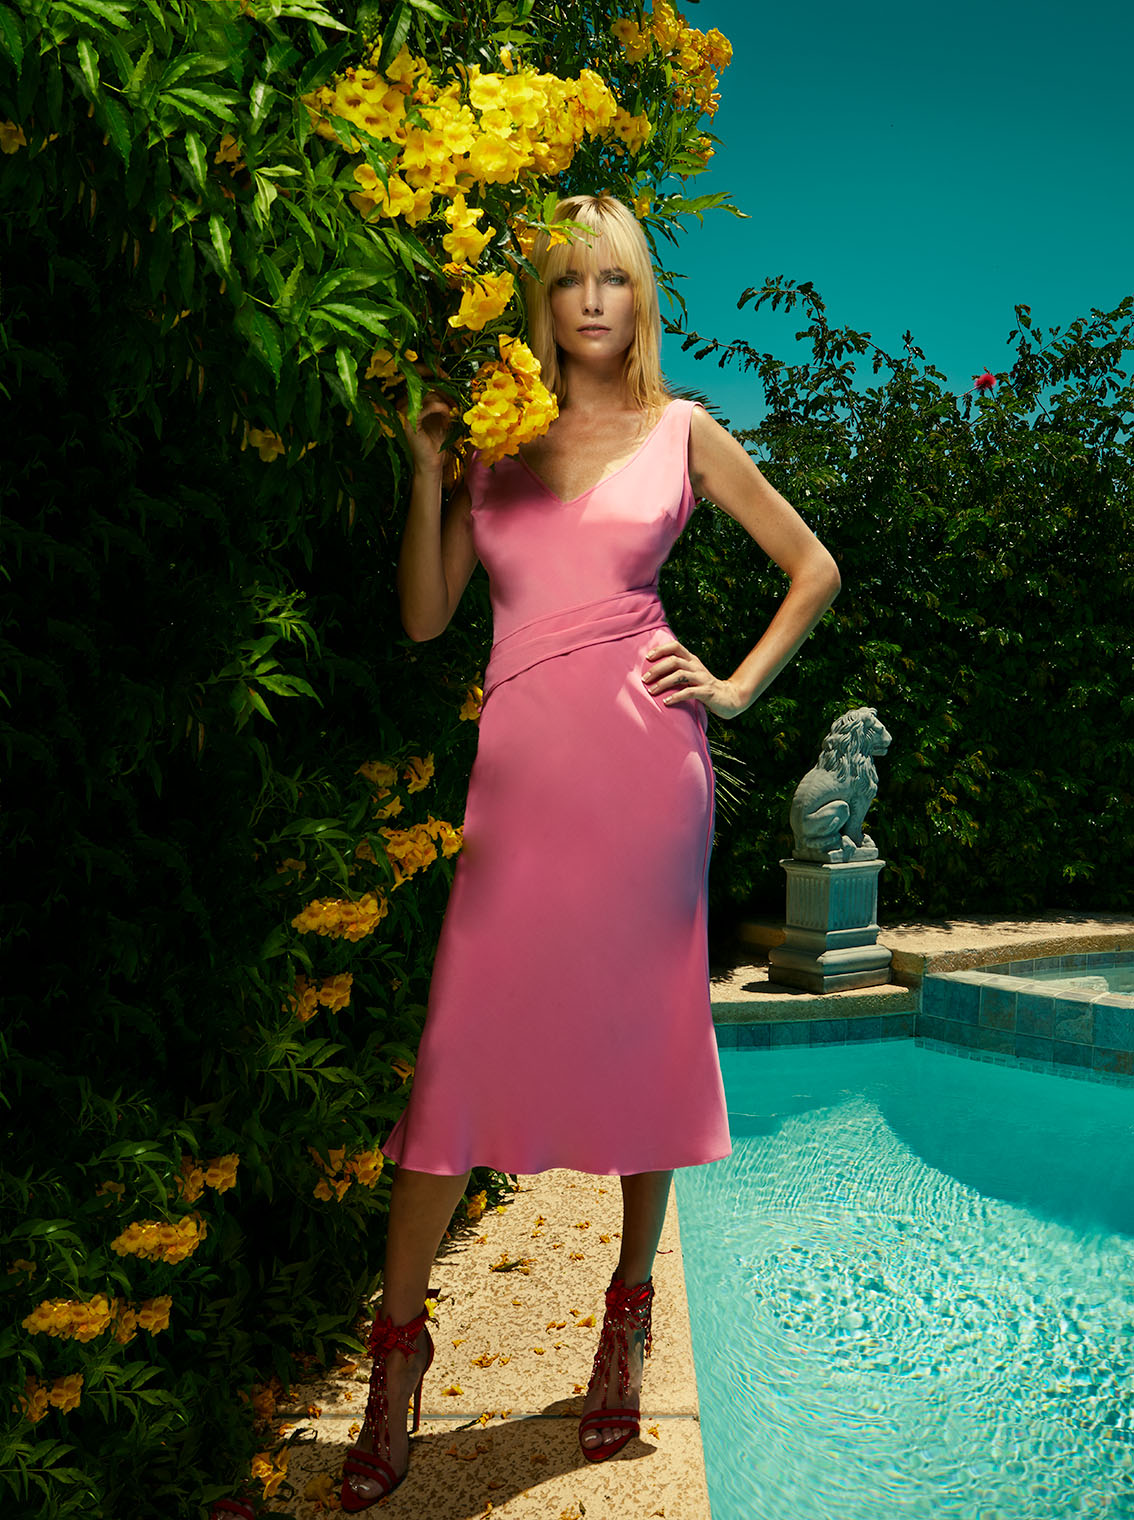 High Fashion Silk Dress at Pool - fashion photography  Los Angeles and New York - campaign and lookbook